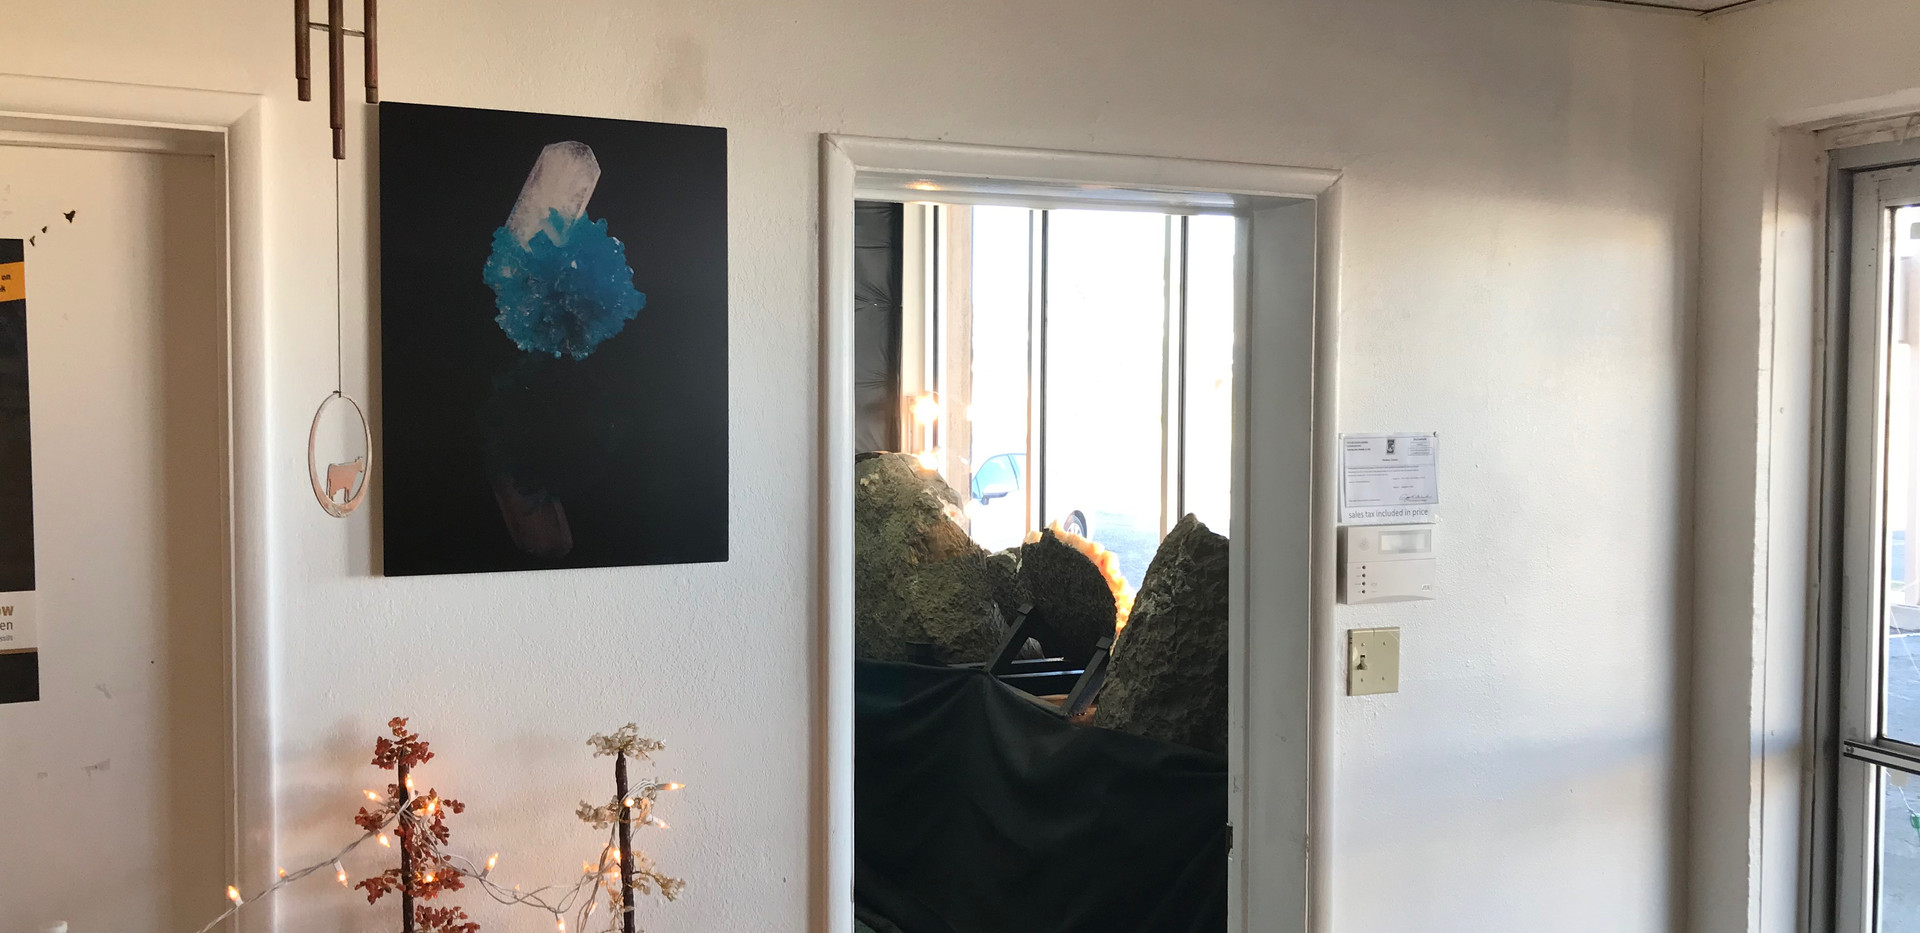 'Floating' by Studio Mineralia installed at Superb Minerals, Tucson, Arizona